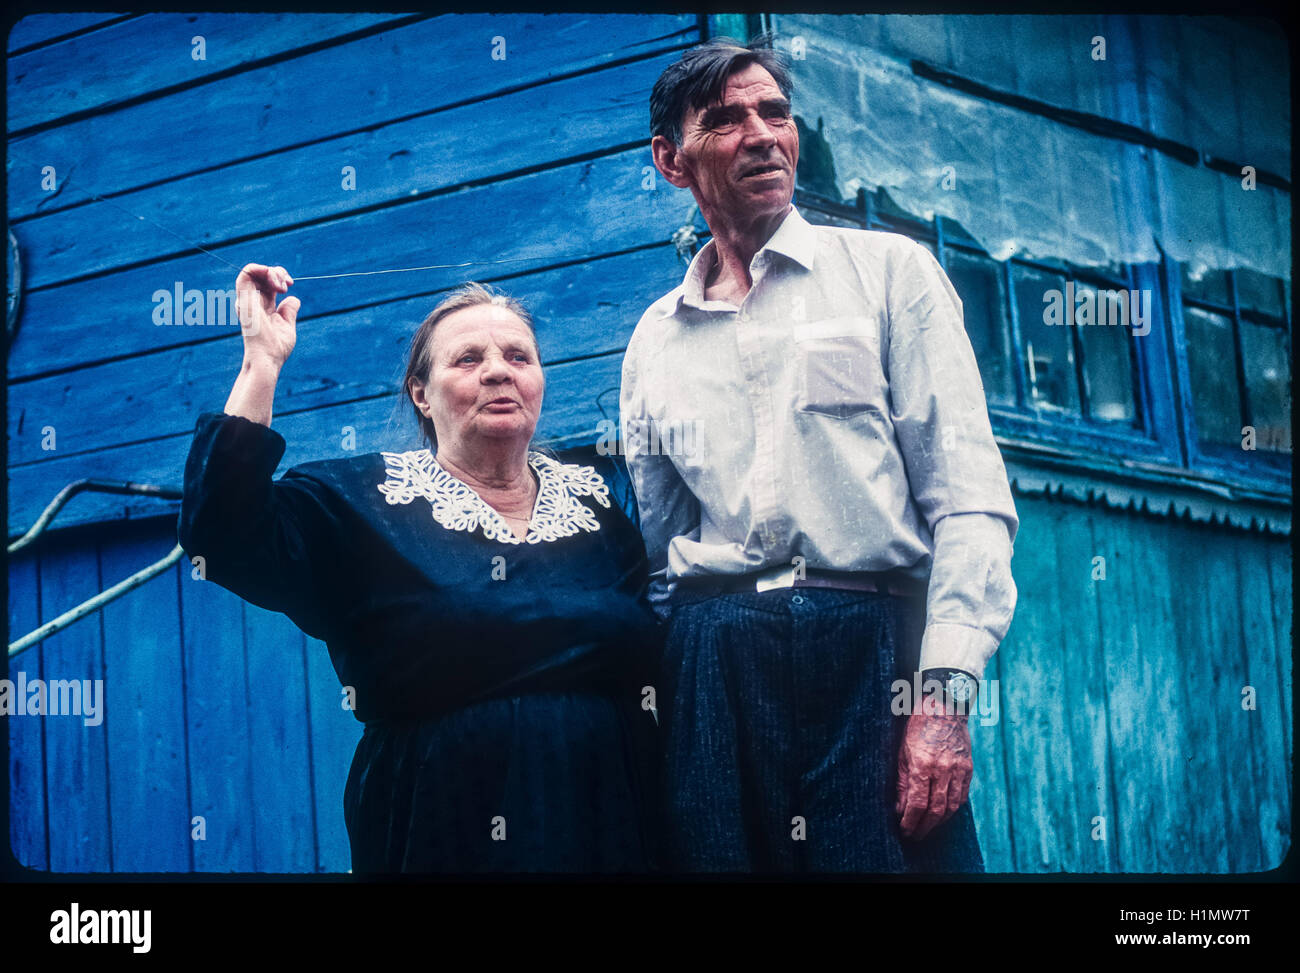 Residents of the city of Chernobyl, after the nuclear accident evacuees who have chosen to return to live in the - Stock Image